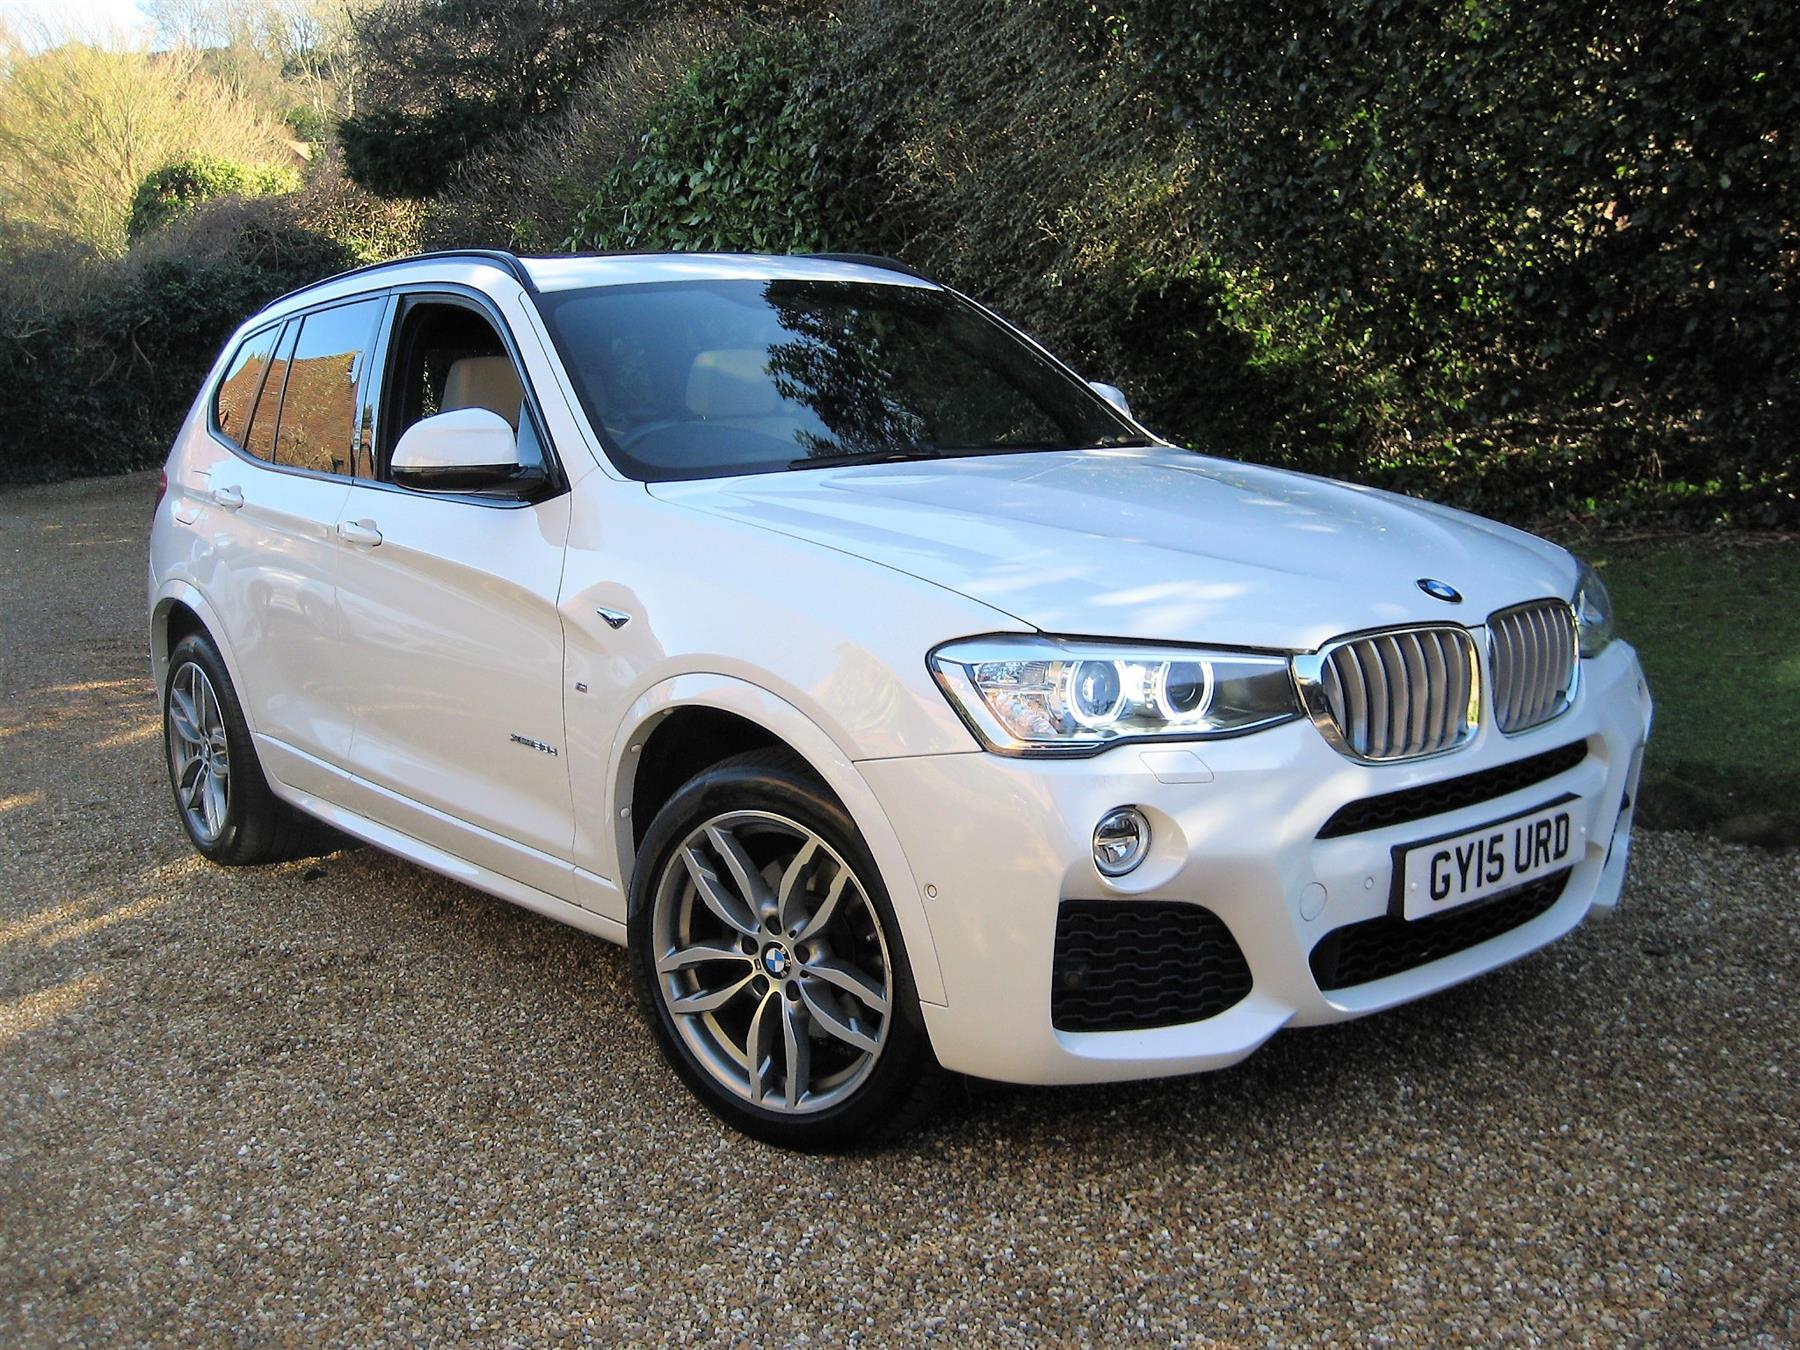 bmw x3 xdrive 30d m sport with panoramic roof simon abbott simon abbott. Black Bedroom Furniture Sets. Home Design Ideas